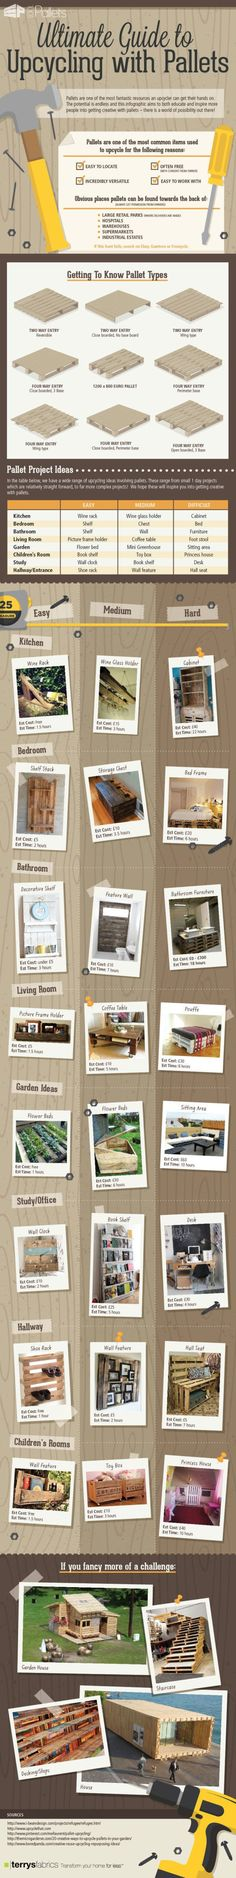 In this Ultimate Guide To Upcycling Pallets, you'll discover that pallets are excellent material to upcycle into many projects. They can be as simple as a shelf, to an entire shed or even a home! Plus, they're also readily available…